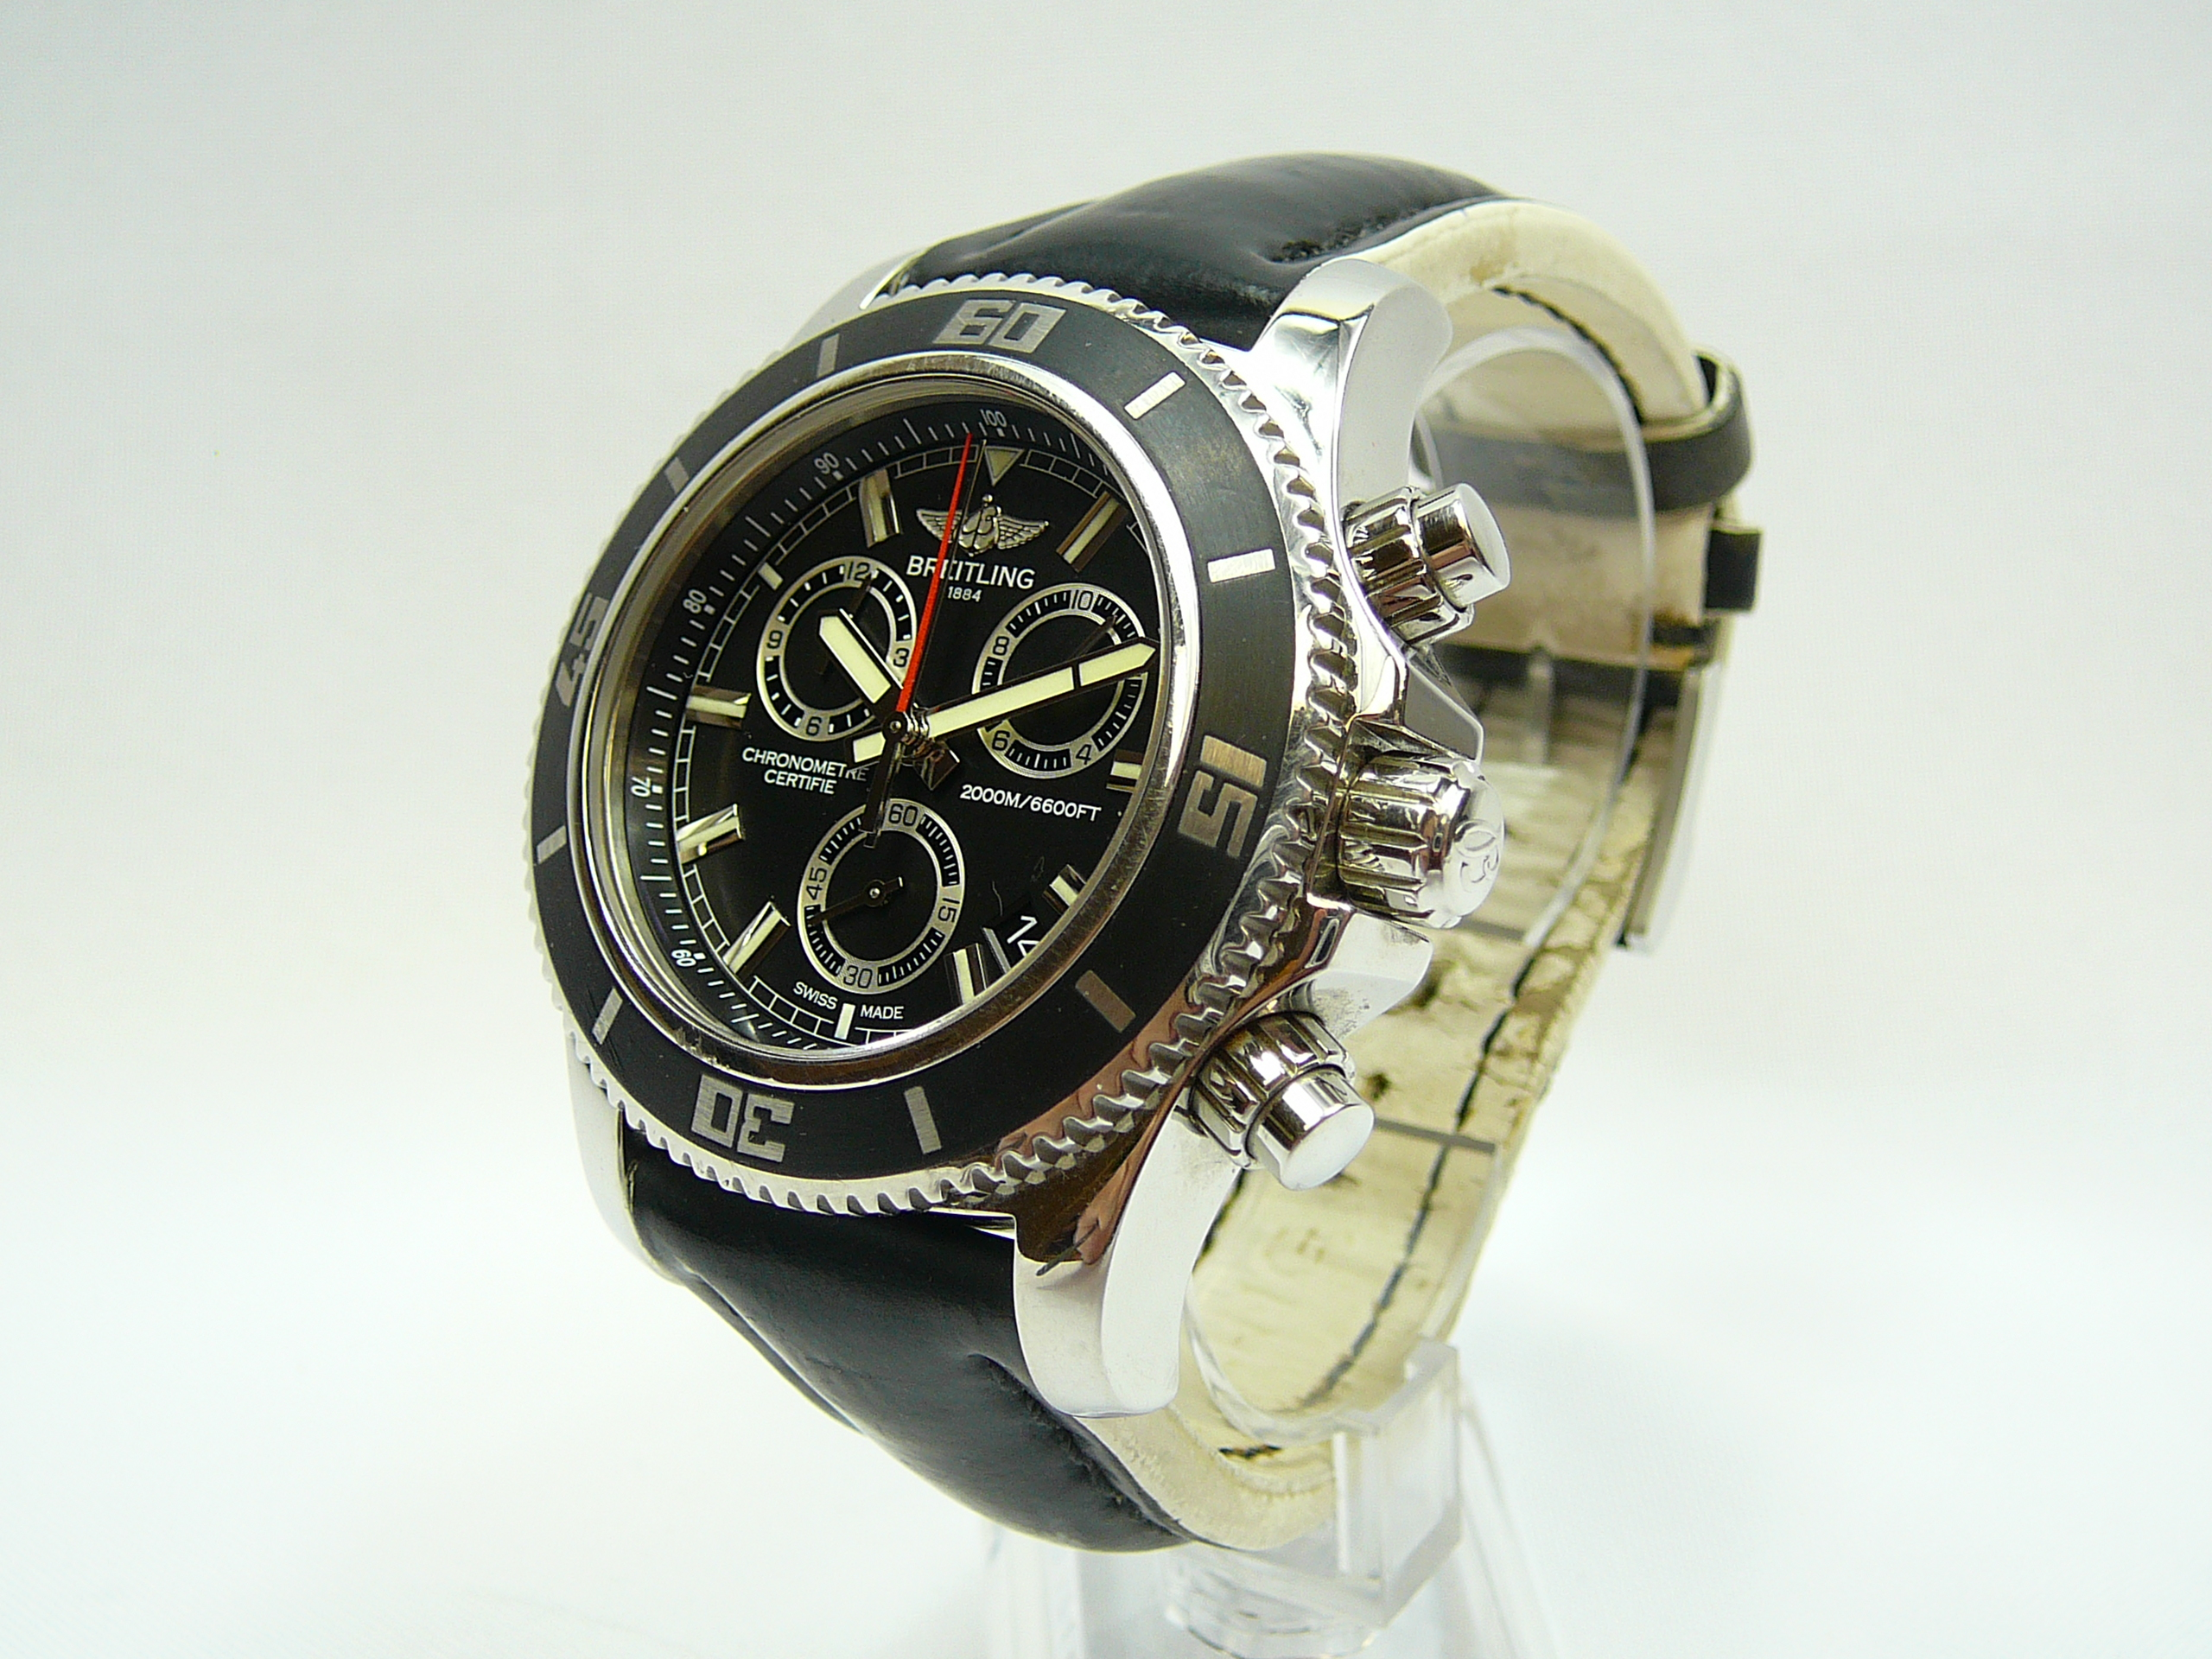 Gents Breitling Wrist Watch - Image 2 of 5